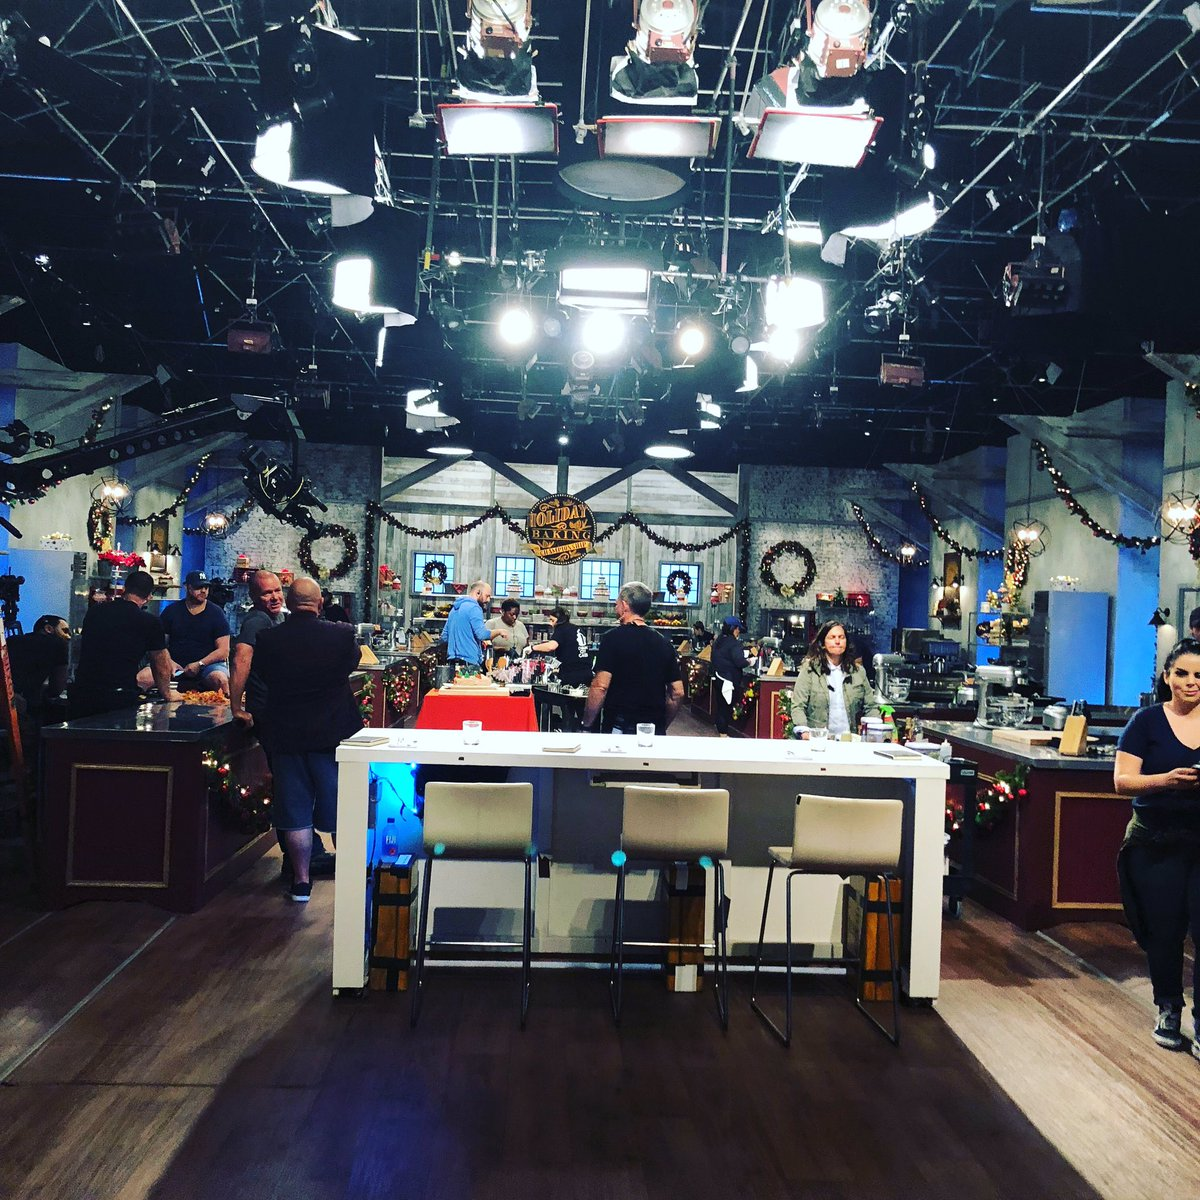 Behind the scenes at #holidaybakingchampionship! We are such a fun work family! #foodnetwork https://t.co/uHApa5PB8Y